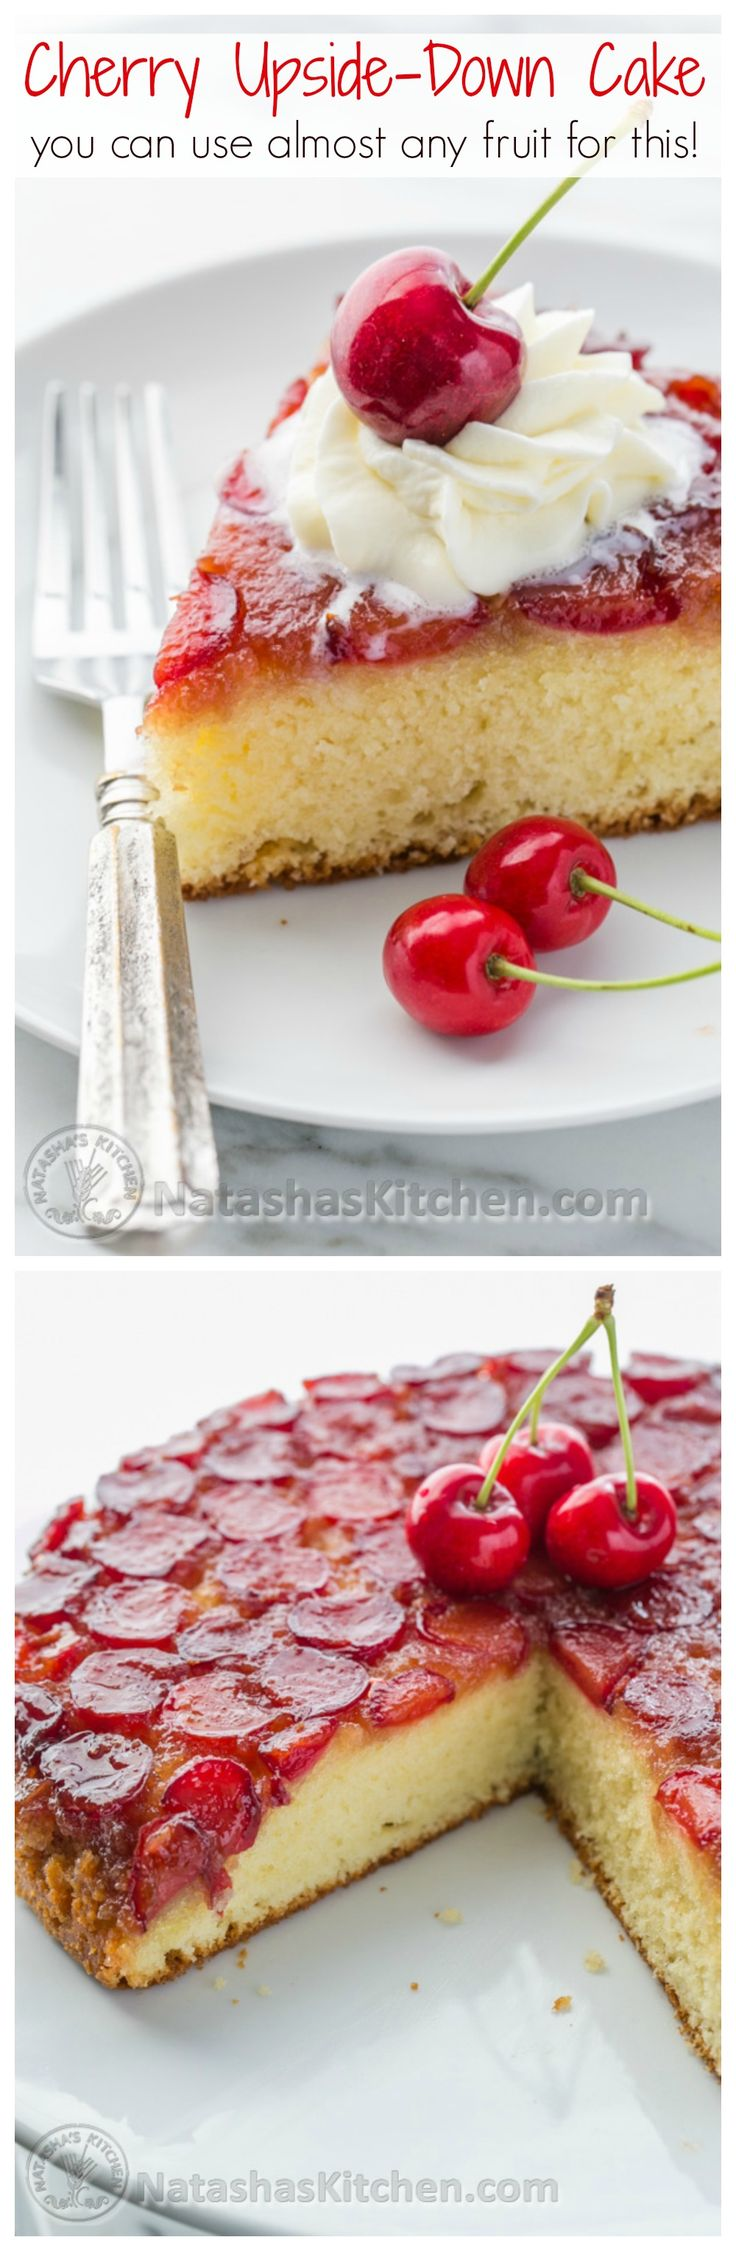 This Cherry Upside-Down Cake is sooooo soft! And you can use just about any kind of fruit! @natasha